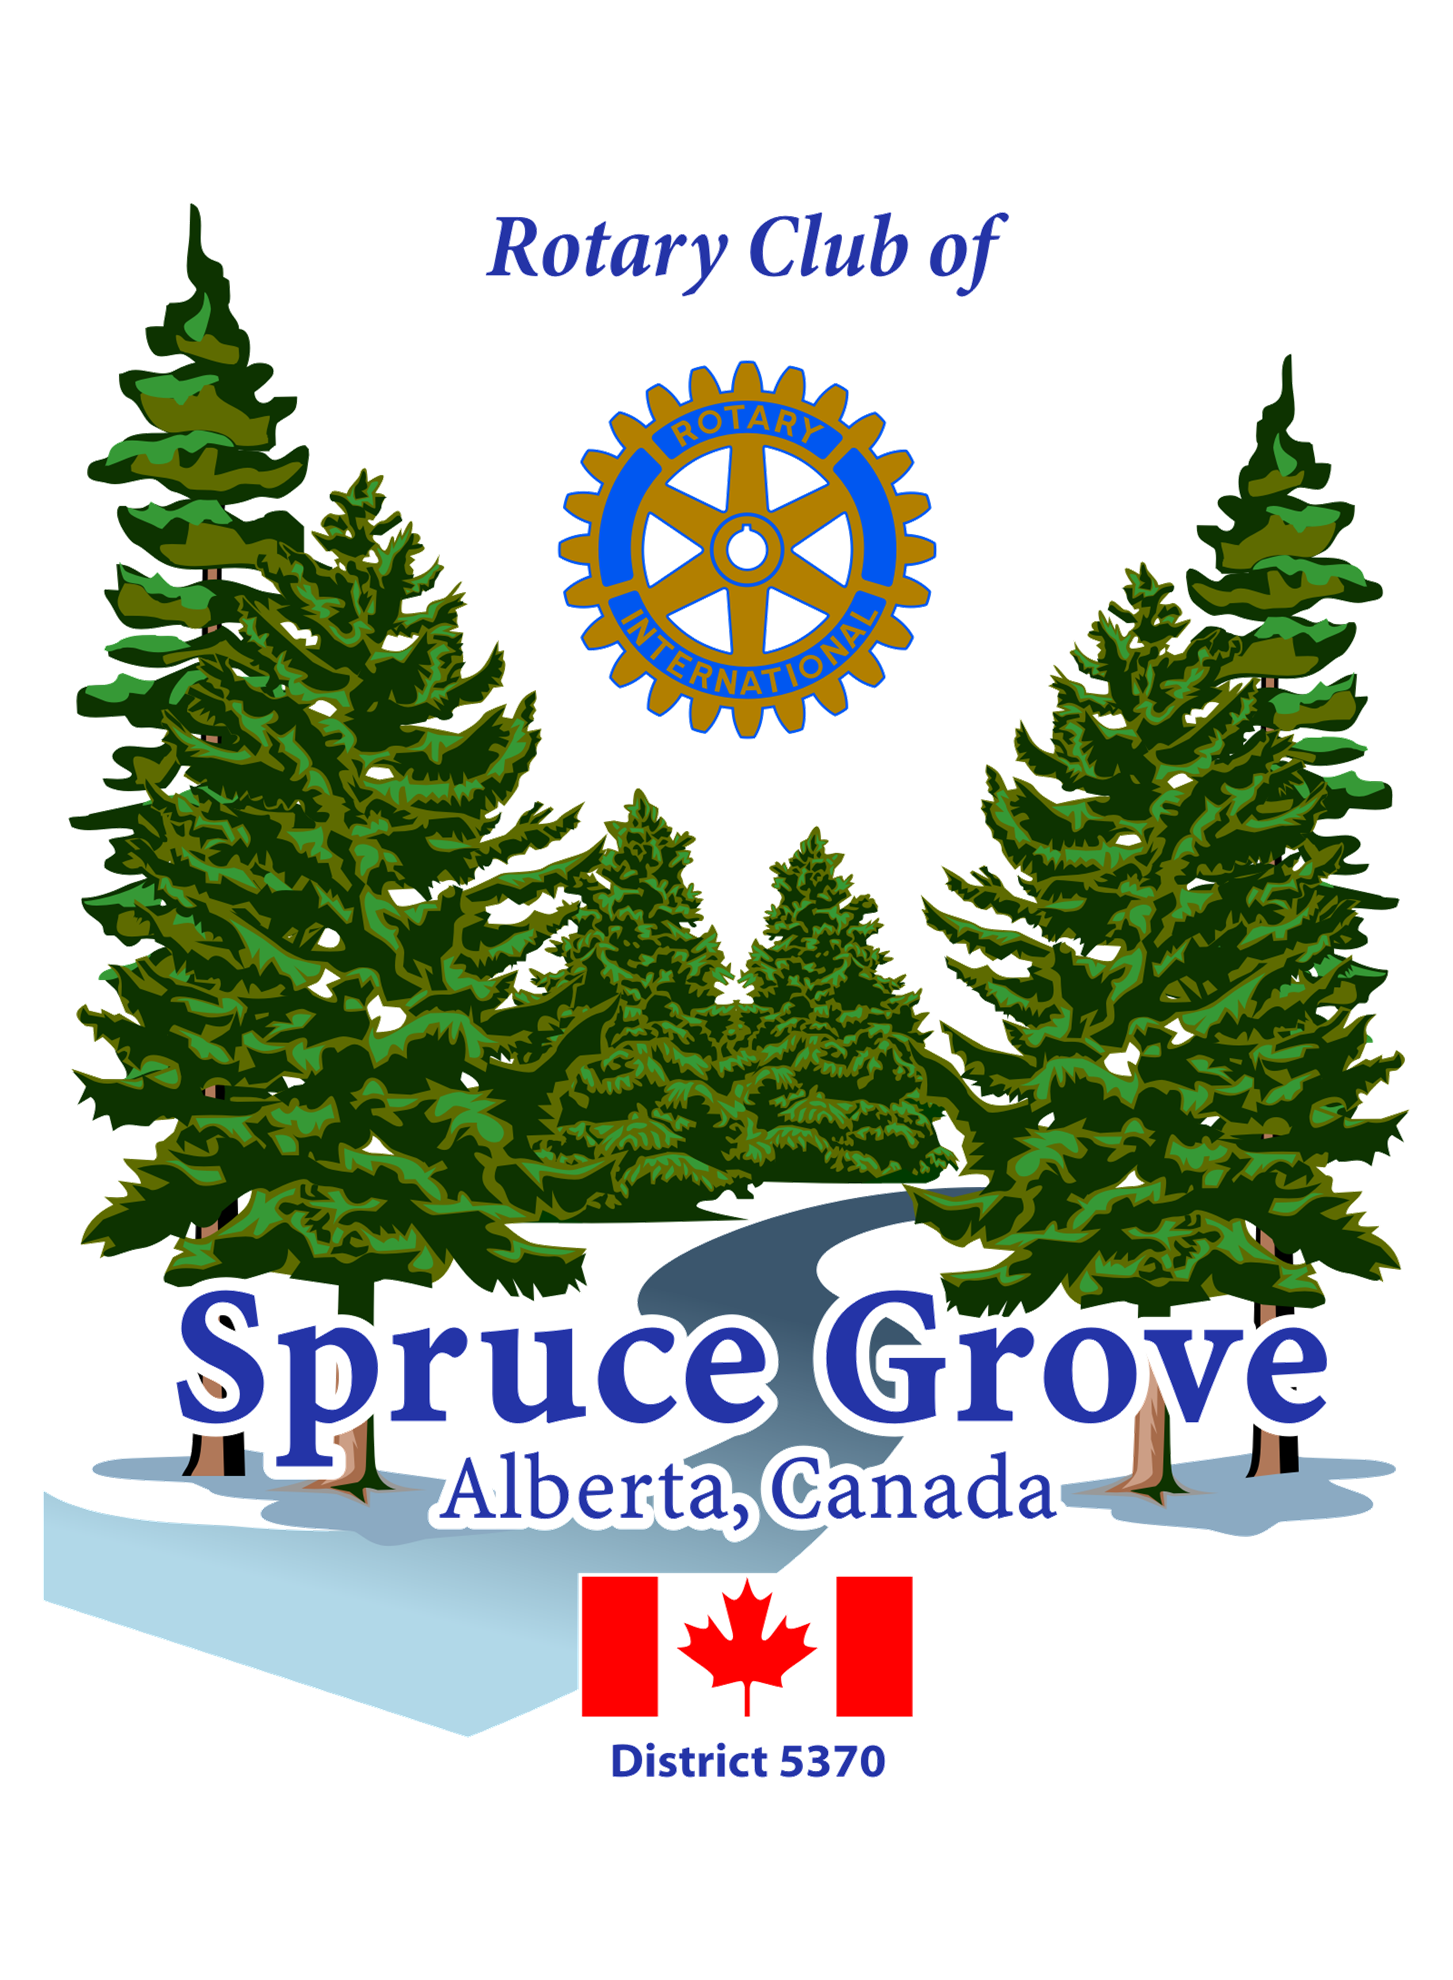 Rotary-Club-of-Spruce-Grove-flag-2.png